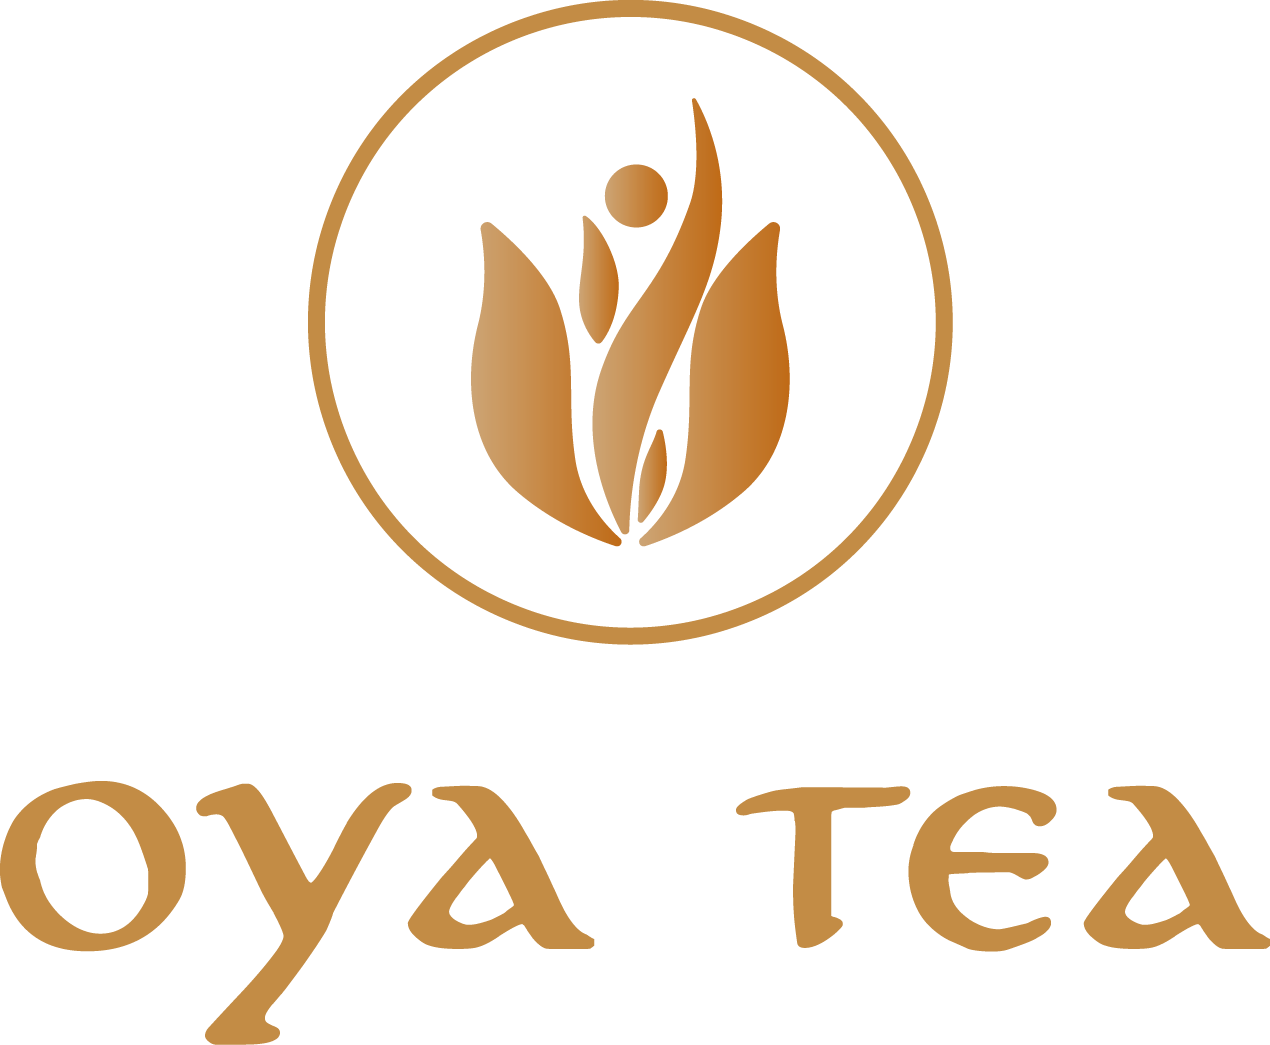 Oya Tea Co.